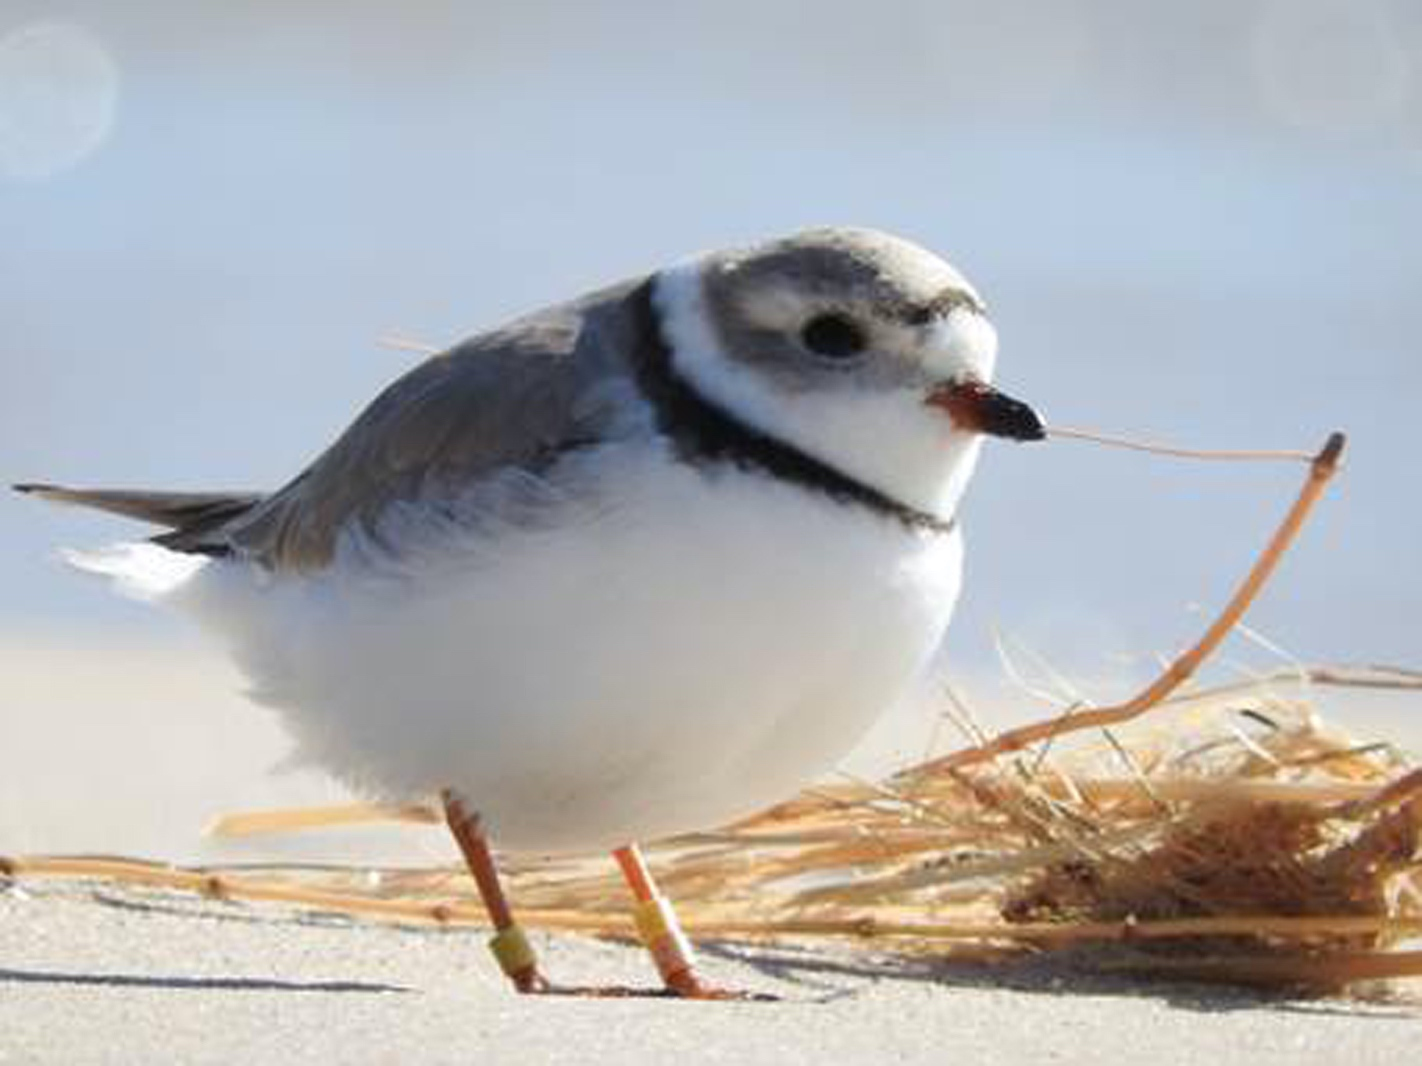 Piping Plover with leg bands